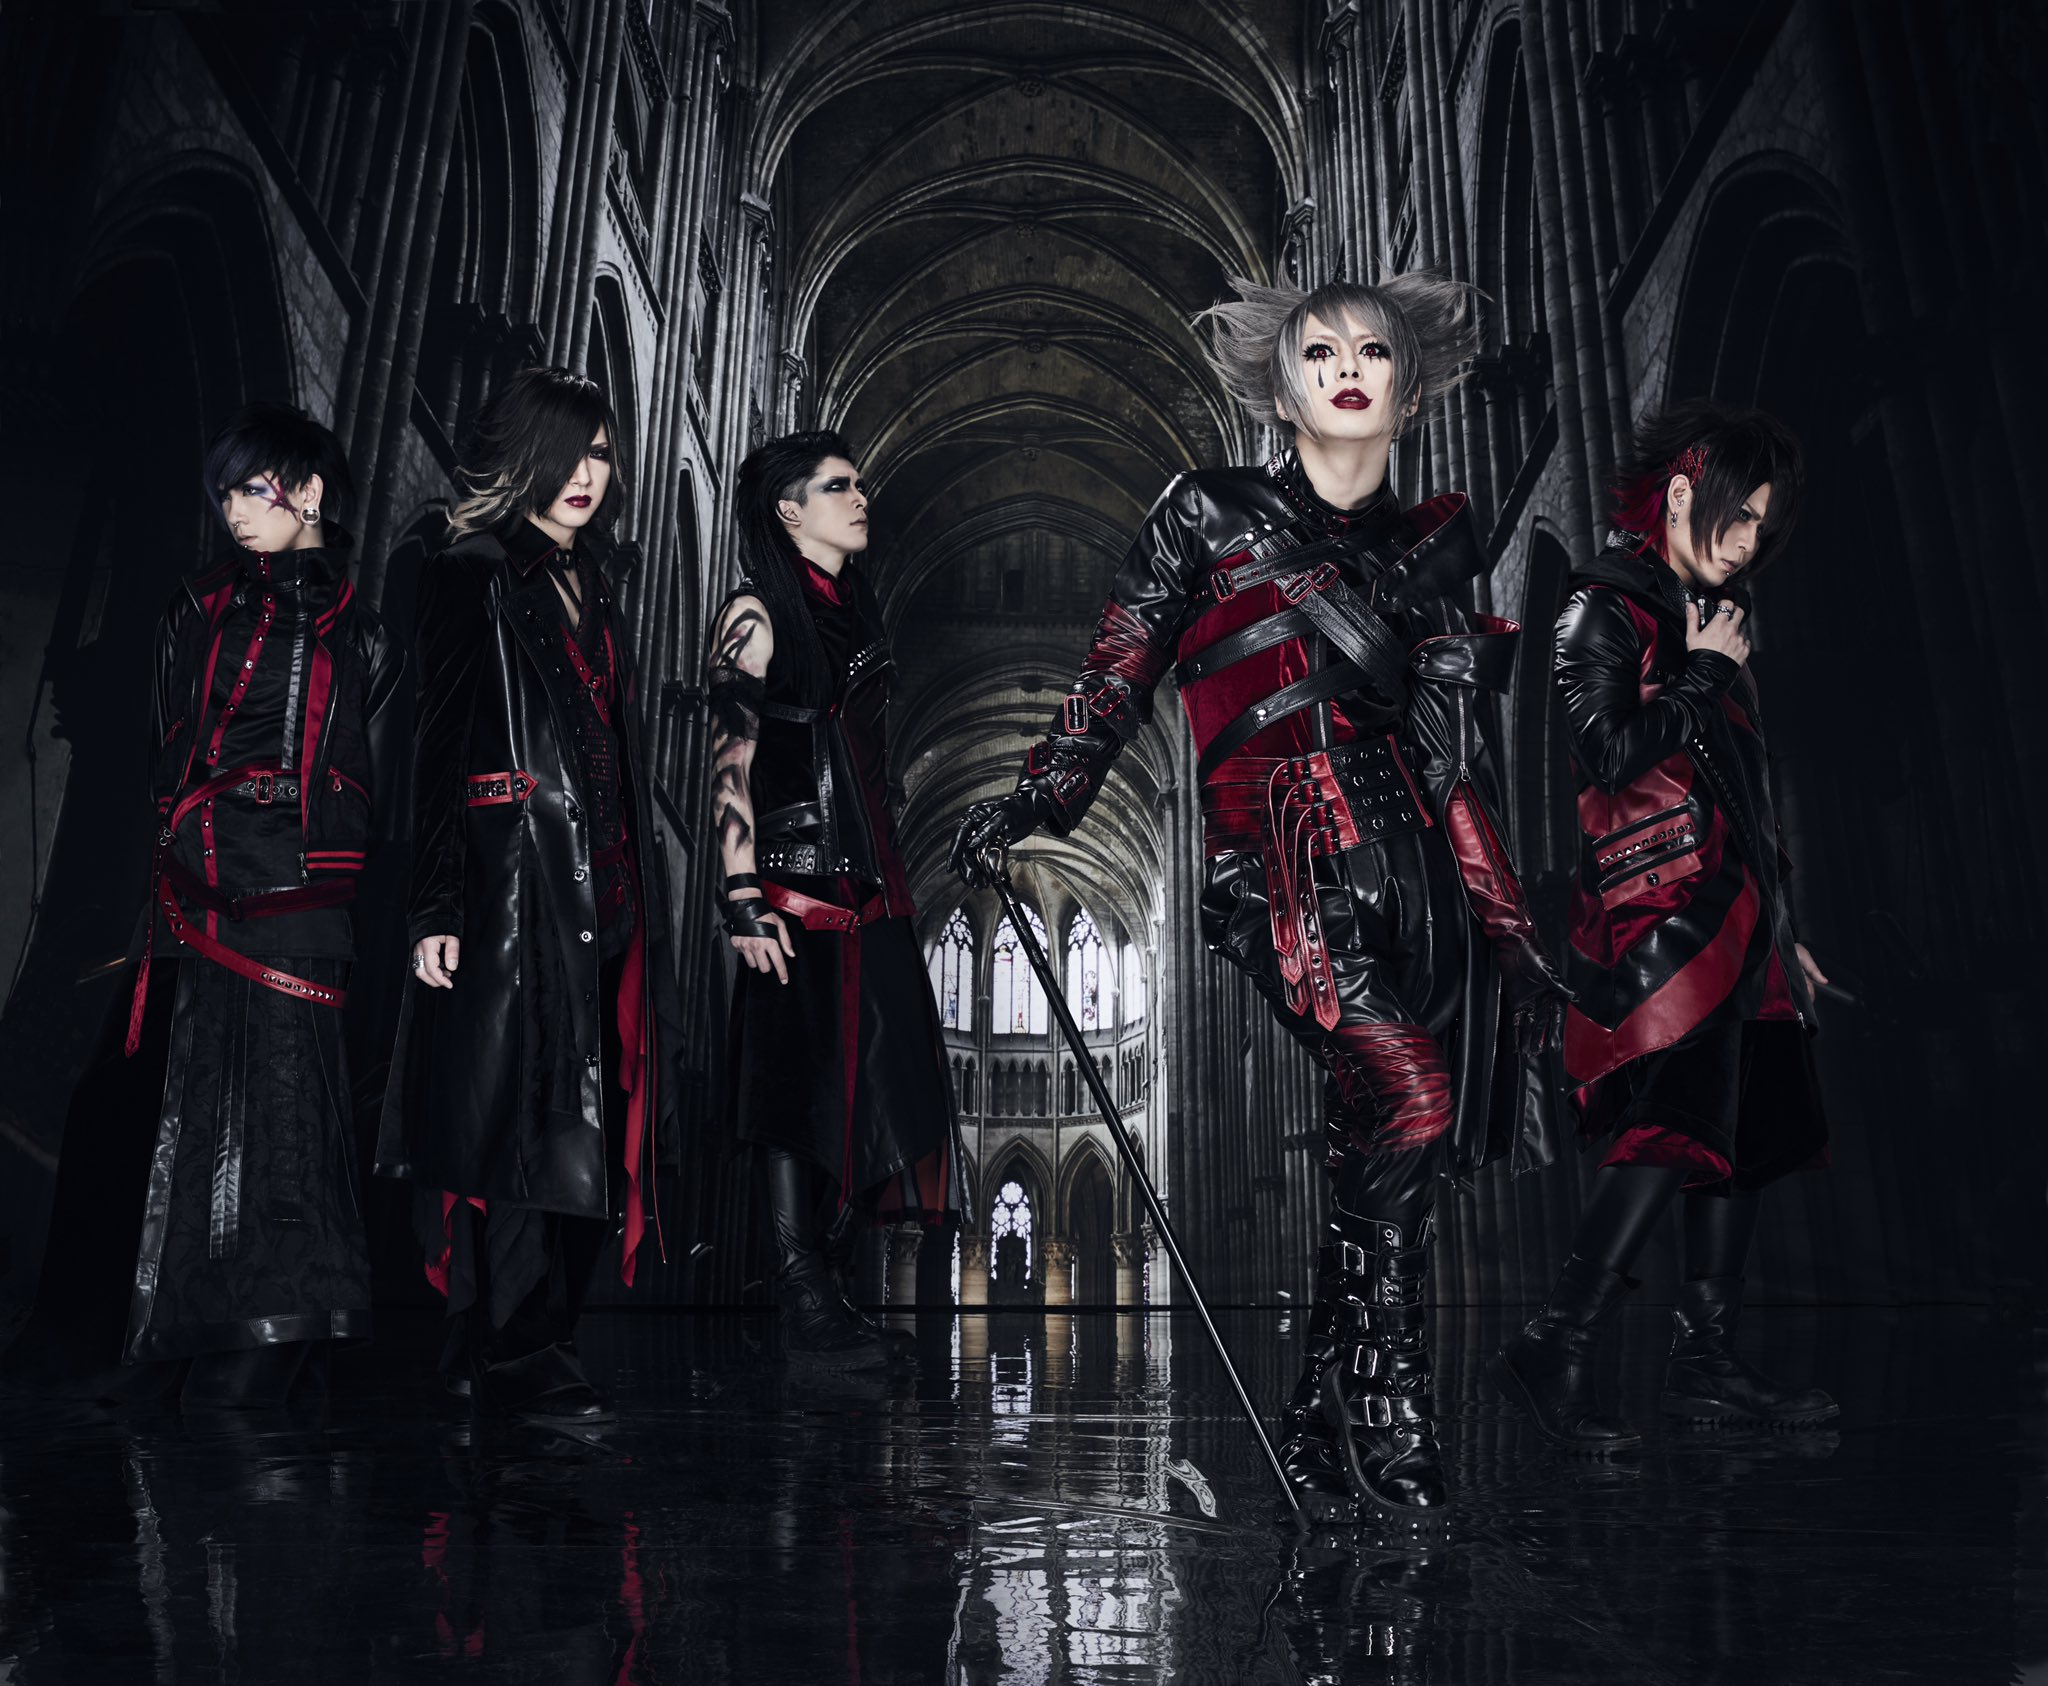 ARLEQUIN's new single/collection album